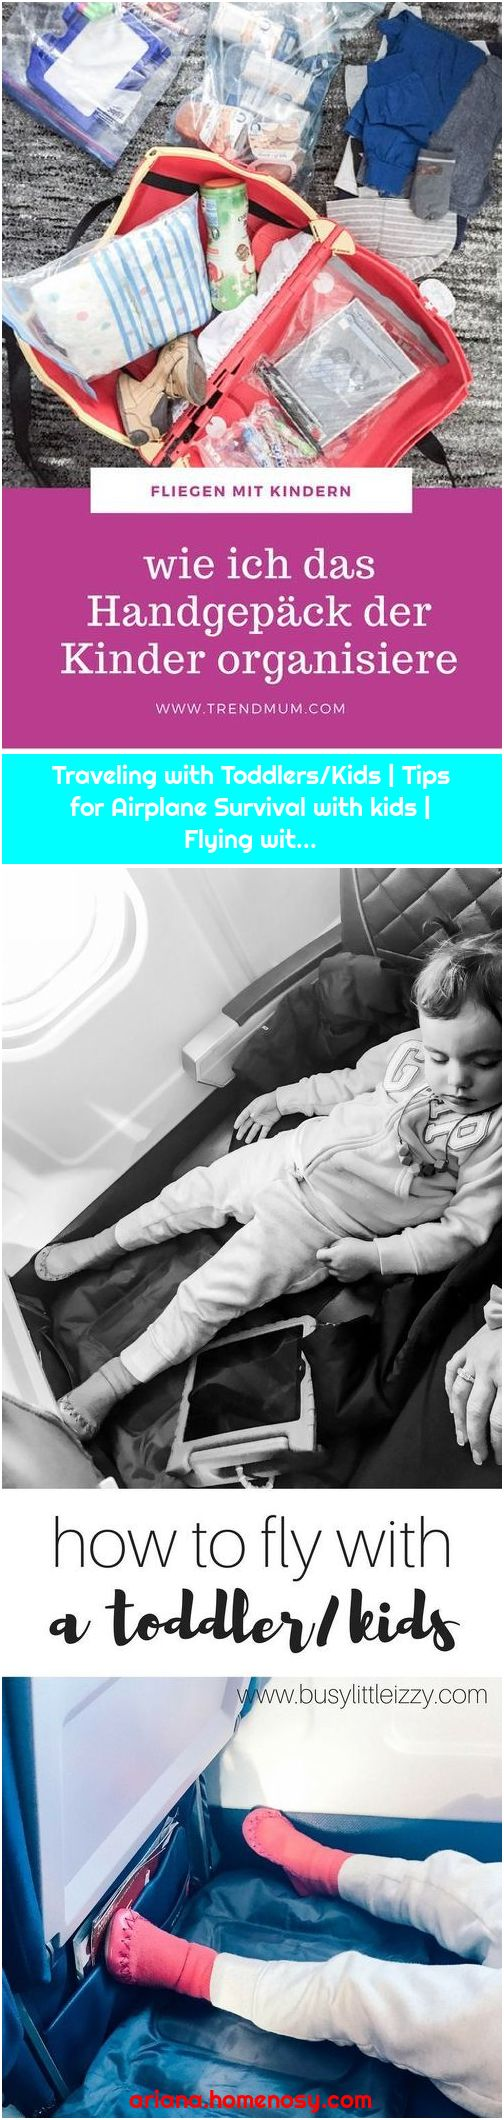 Traveling with Toddlers/Kids | Tips for Airplane Survival with kids | Flying wit...